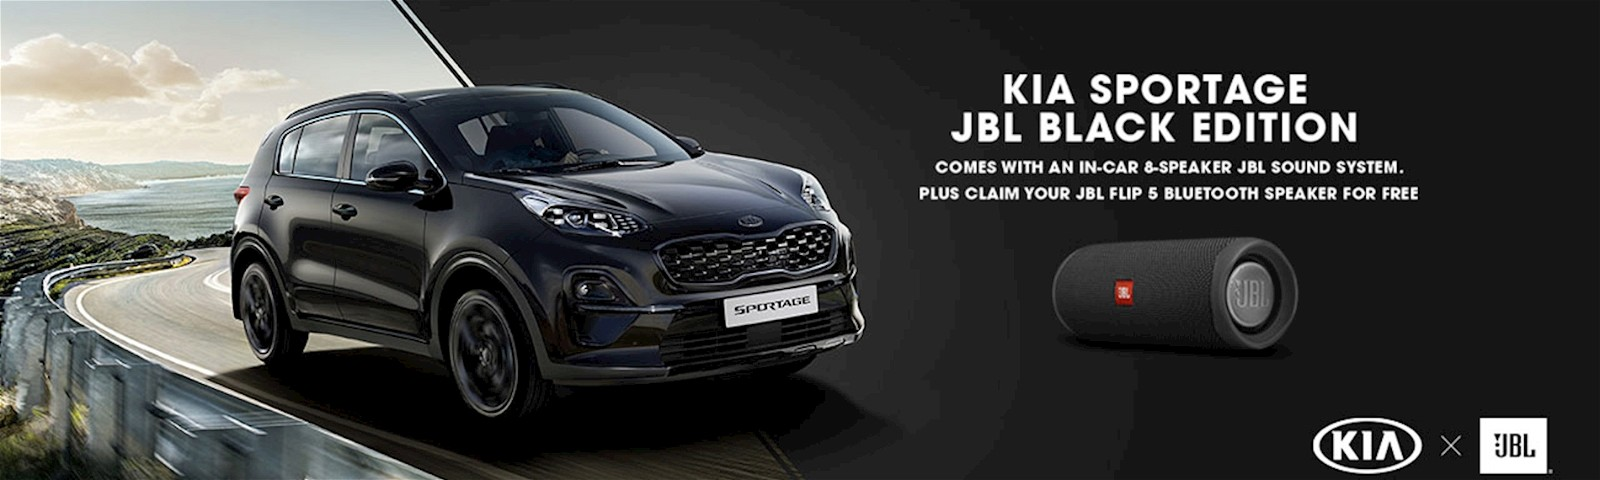 The New Kia Sportage JBL Black Edition